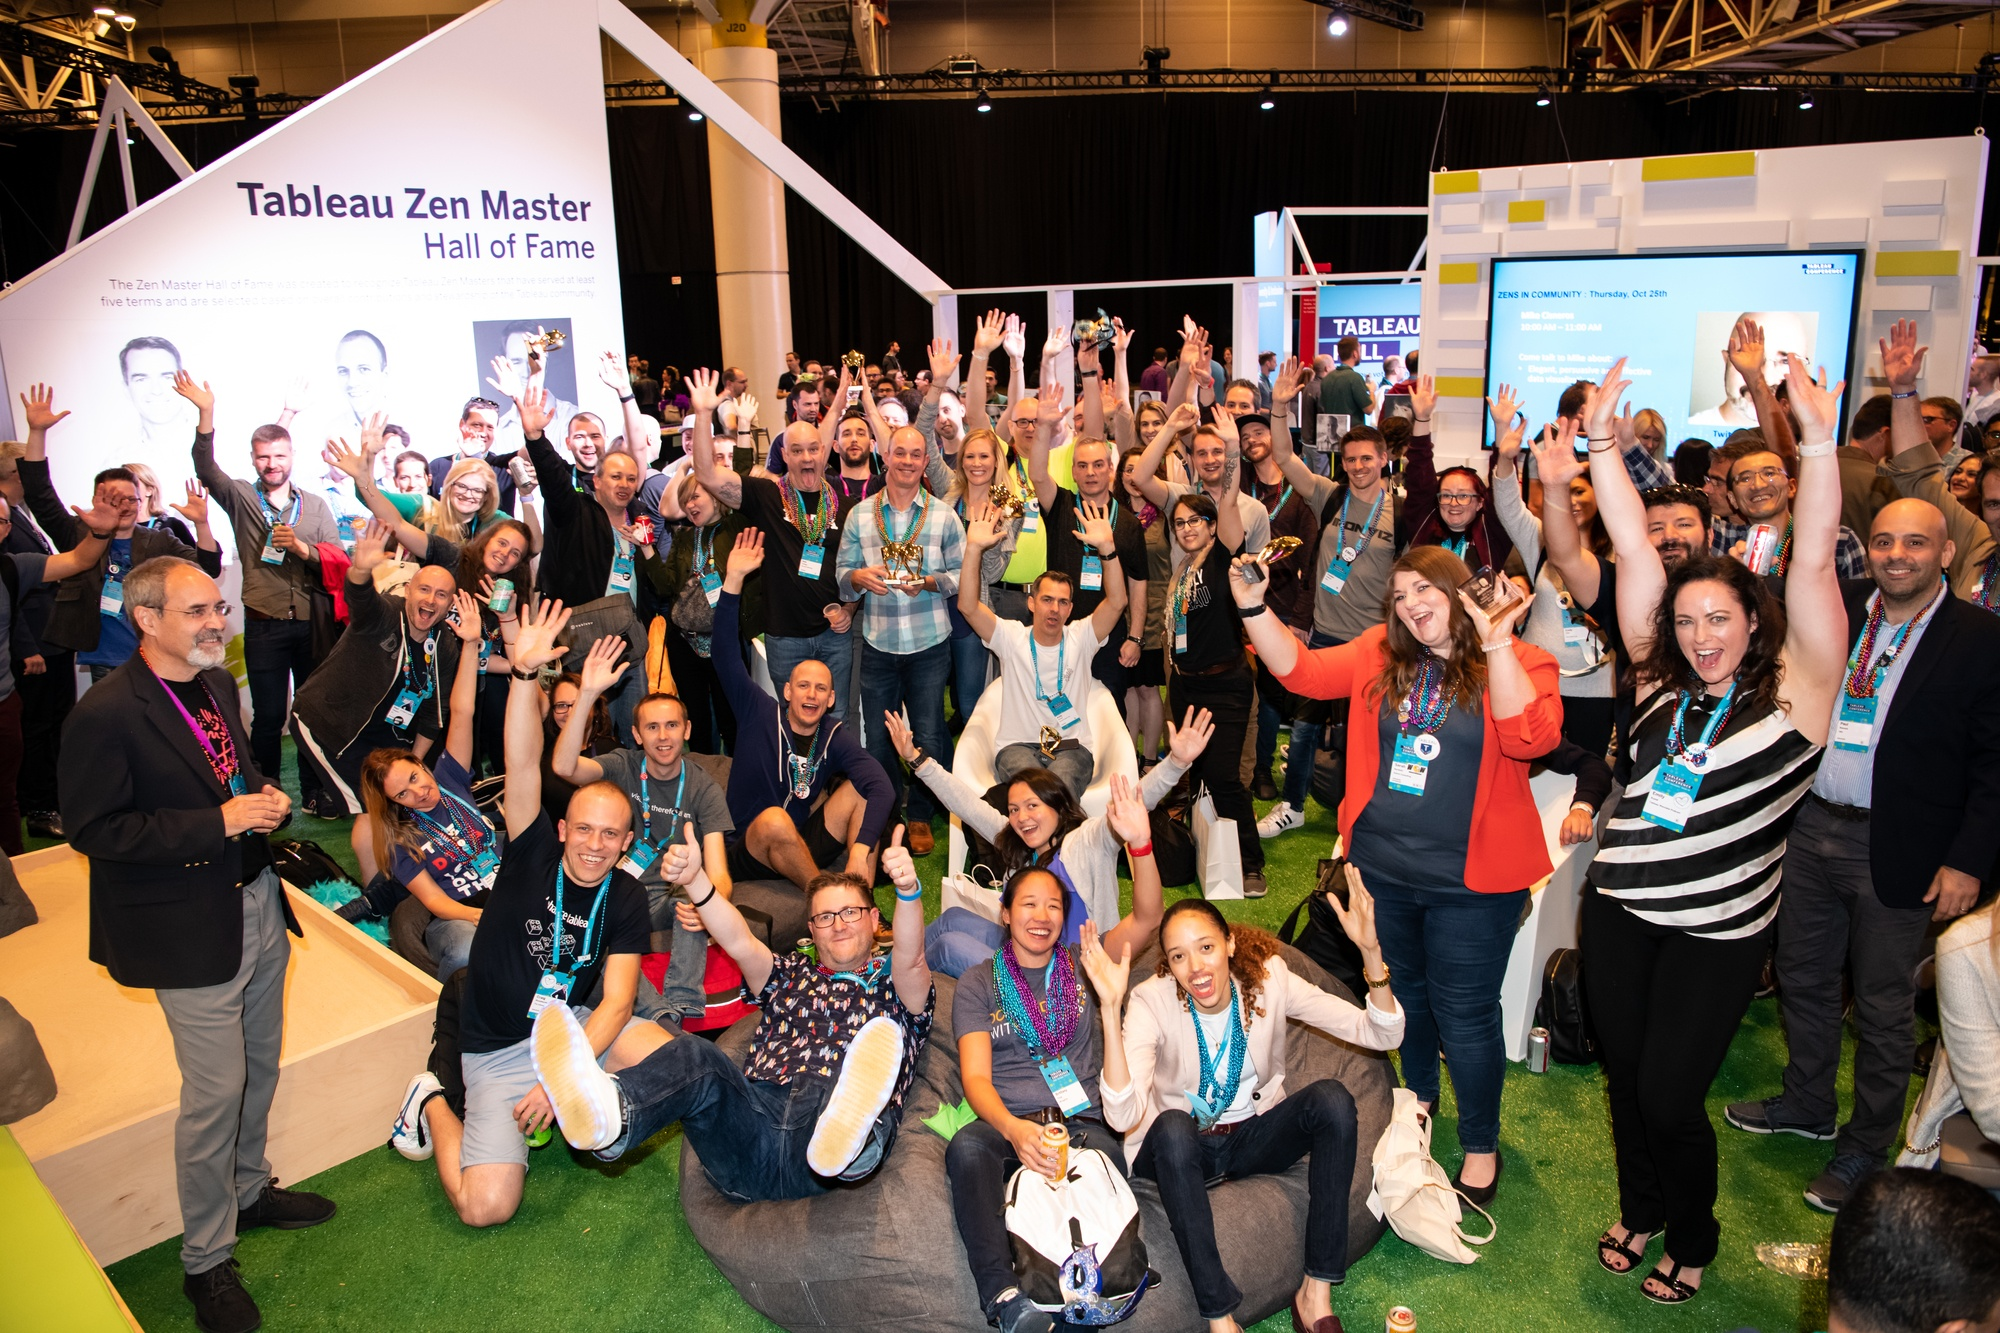 Tableau customers and community members gather to celebrate in the Data Village at Tableau Conference 2018